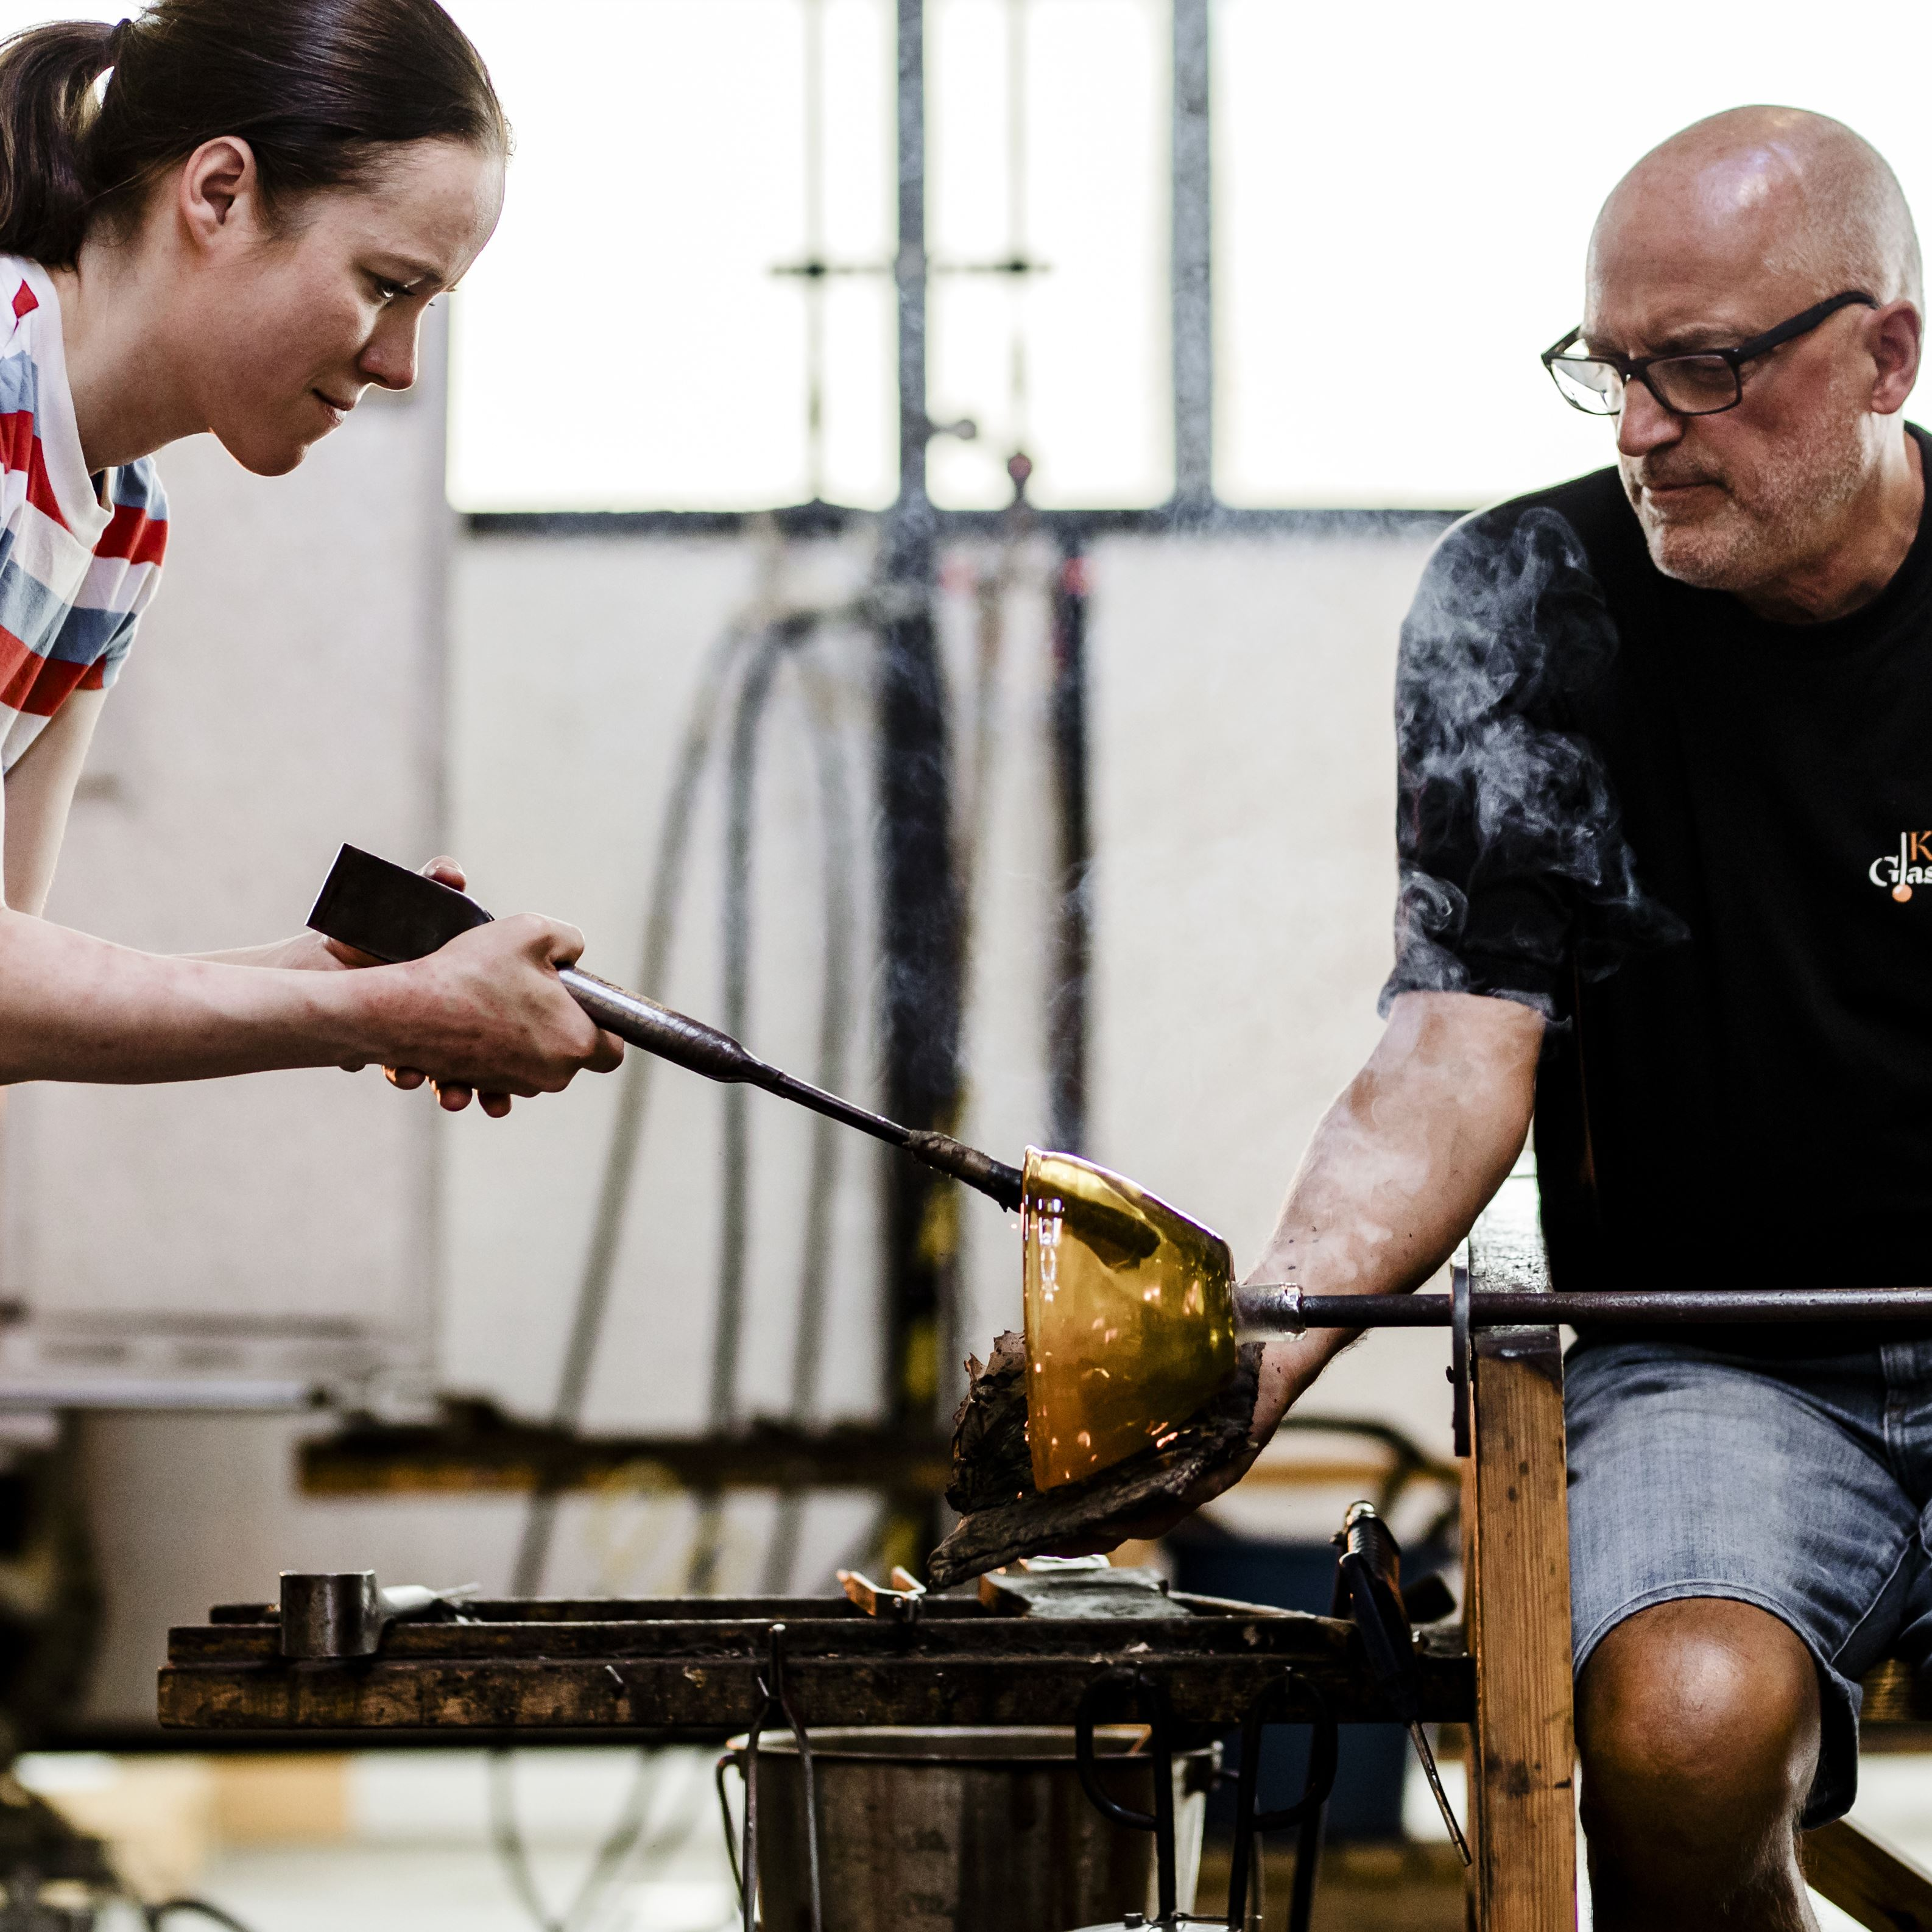 Try your hand at glassblowing